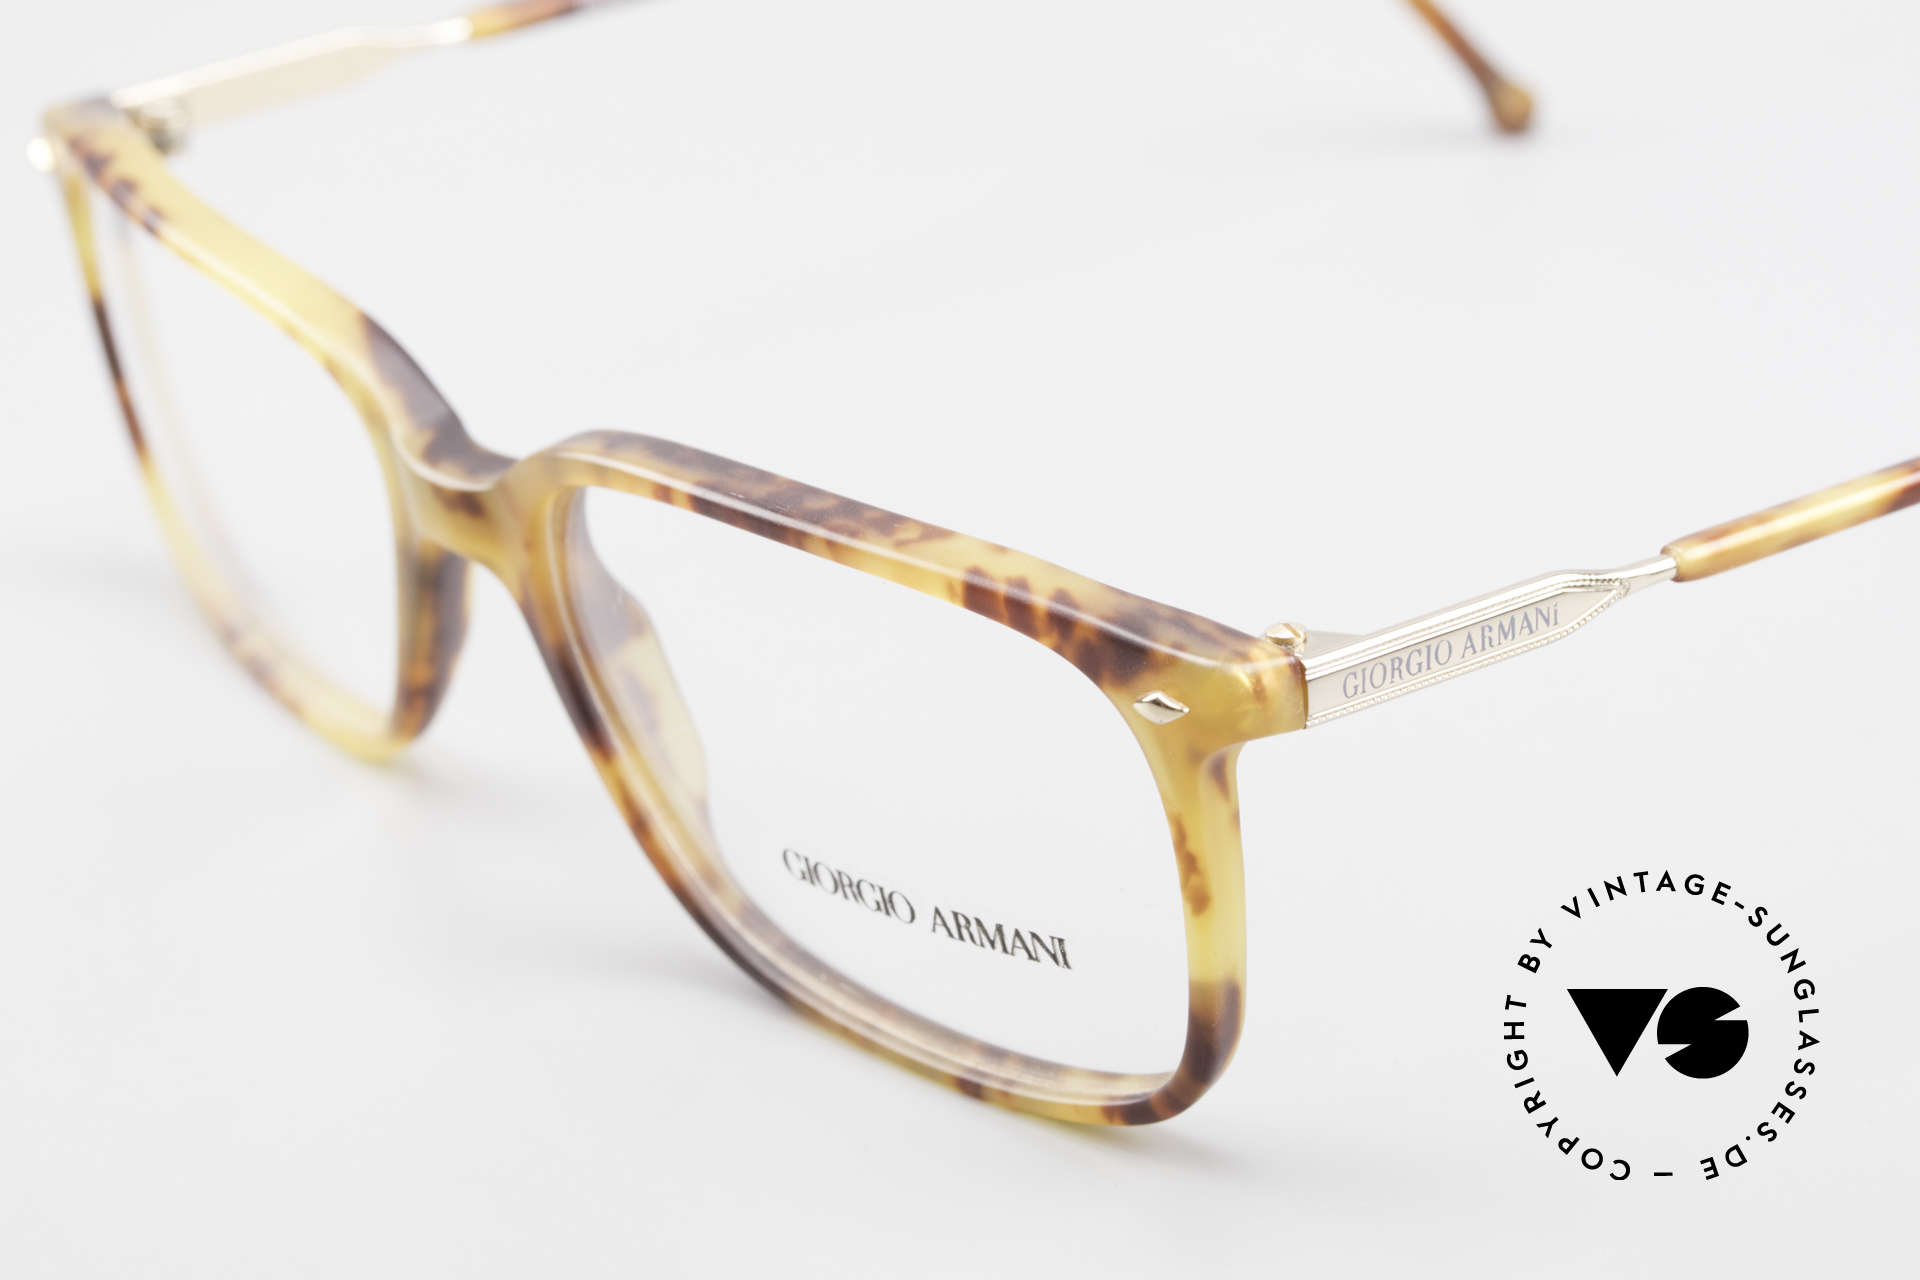 Giorgio Armani 332 True Vintage Eyeglass Frame, unworn (like all our vintage Giorgio Armani specs), Made for Men